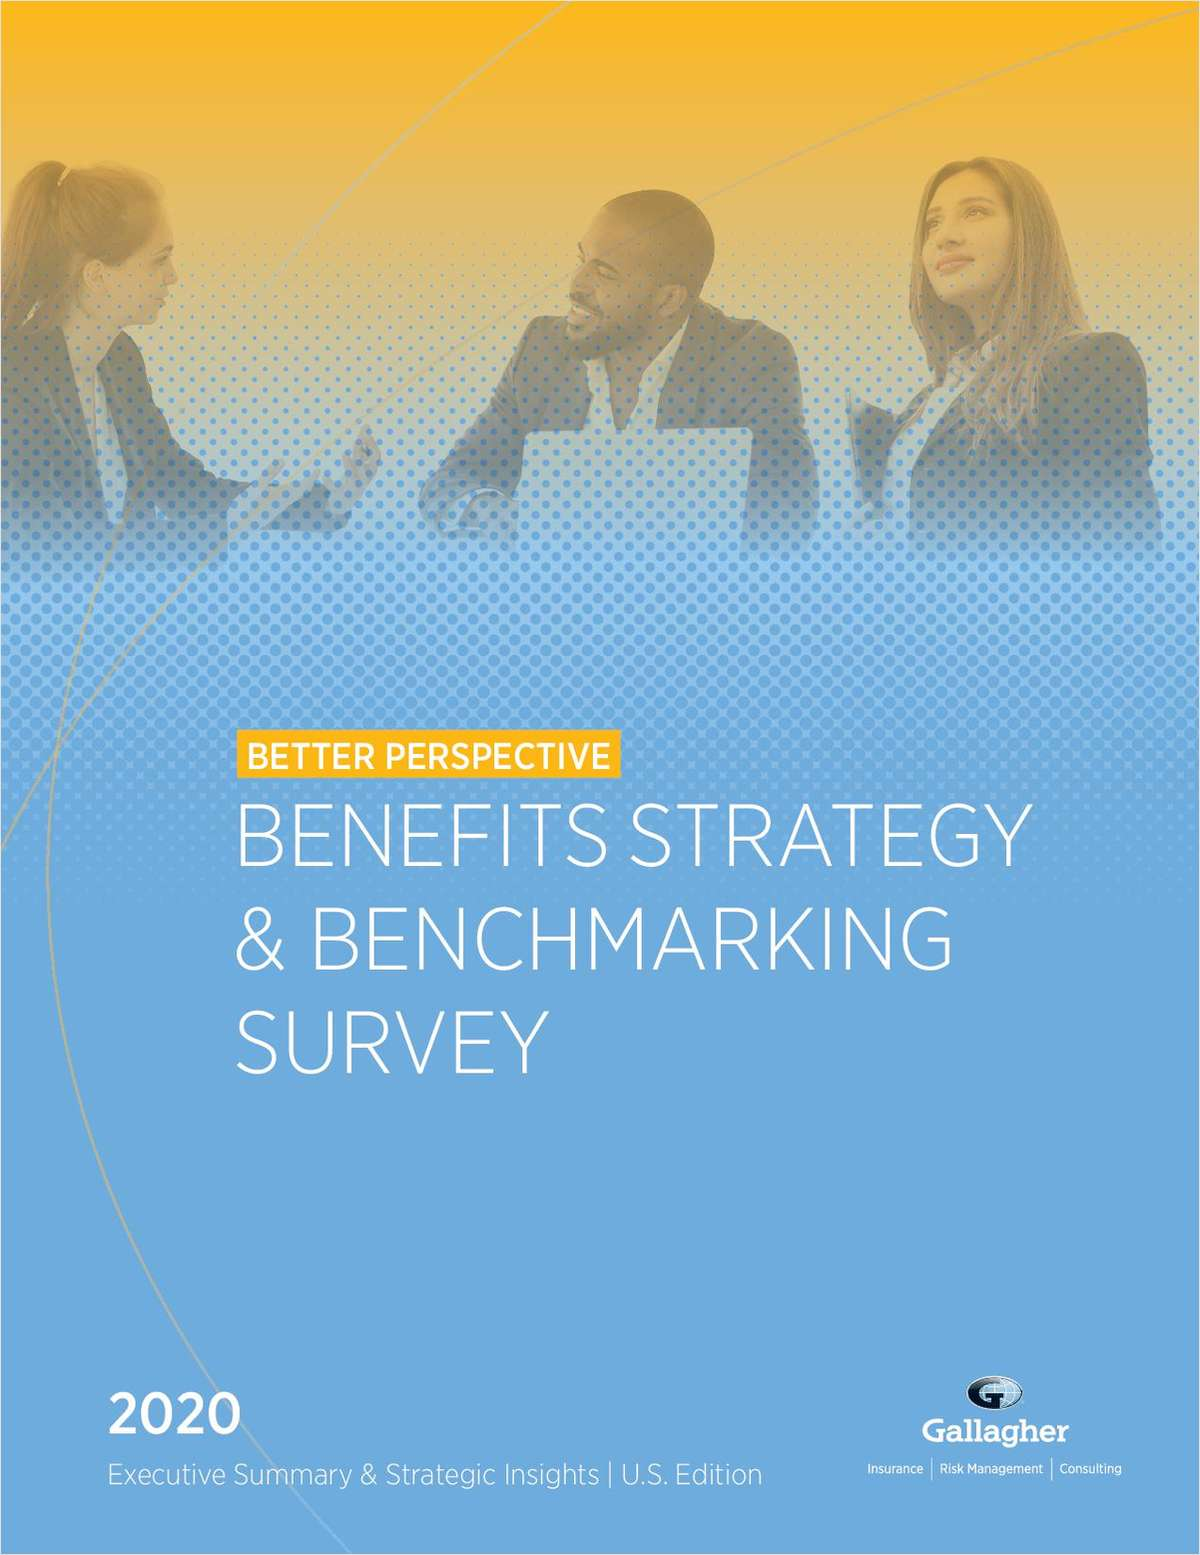 Benefits Strategy & Benchmarking Survey Executive Summary